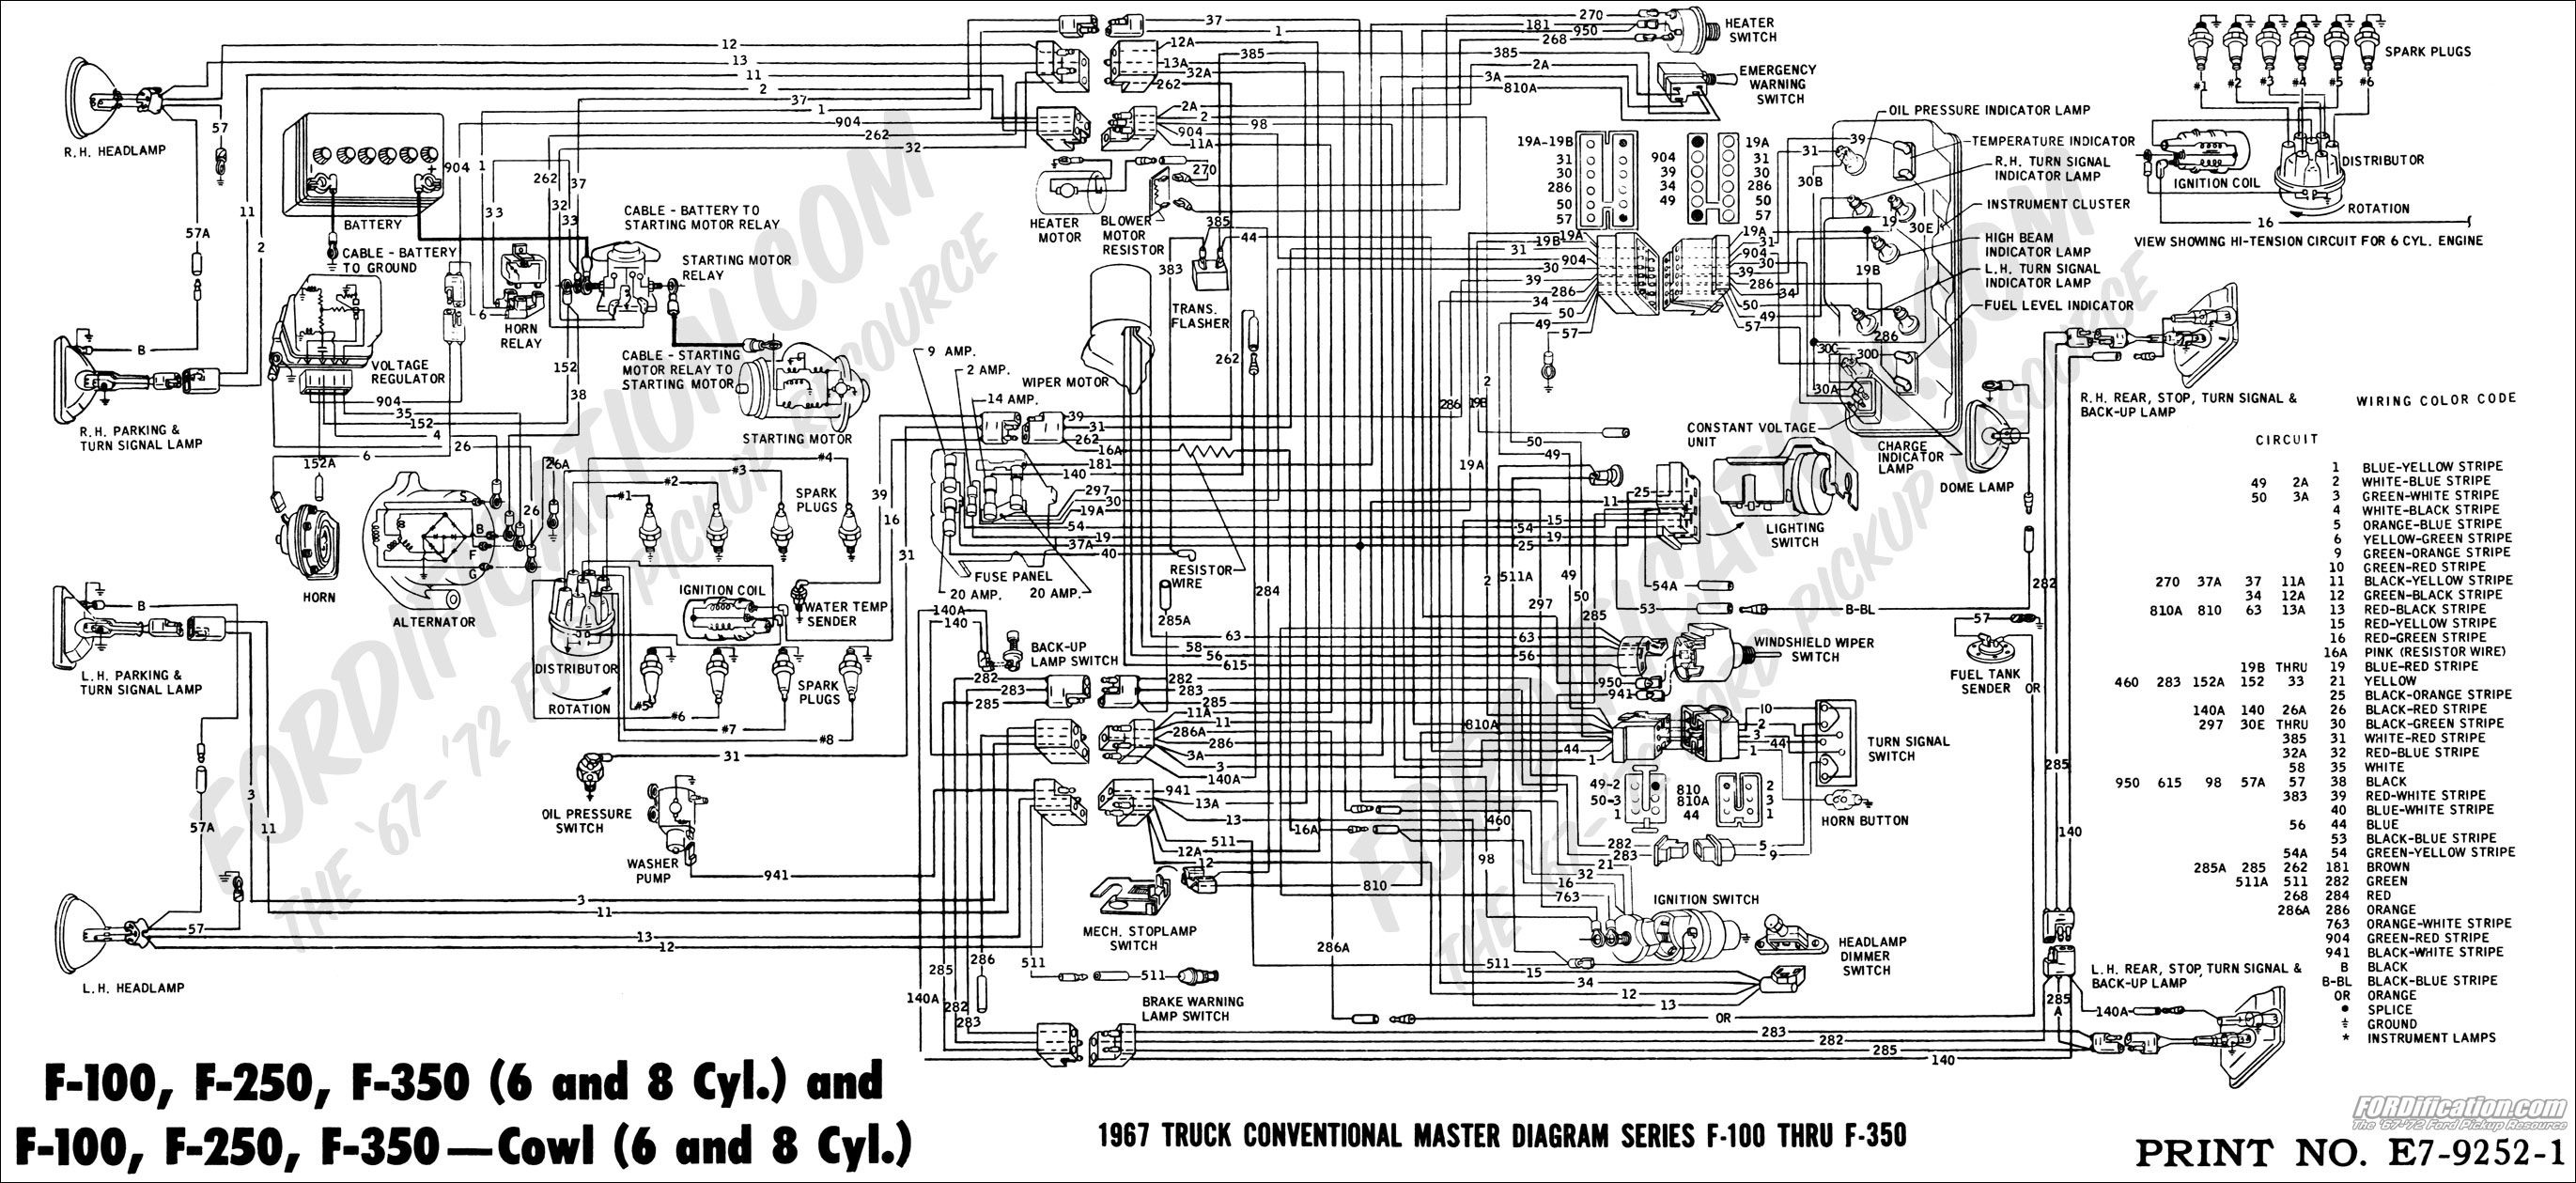 67masterdiagram wiring diagrams ford 2014 f150 readingrat net 1990 ford truck wiring diagram at gsmx.co